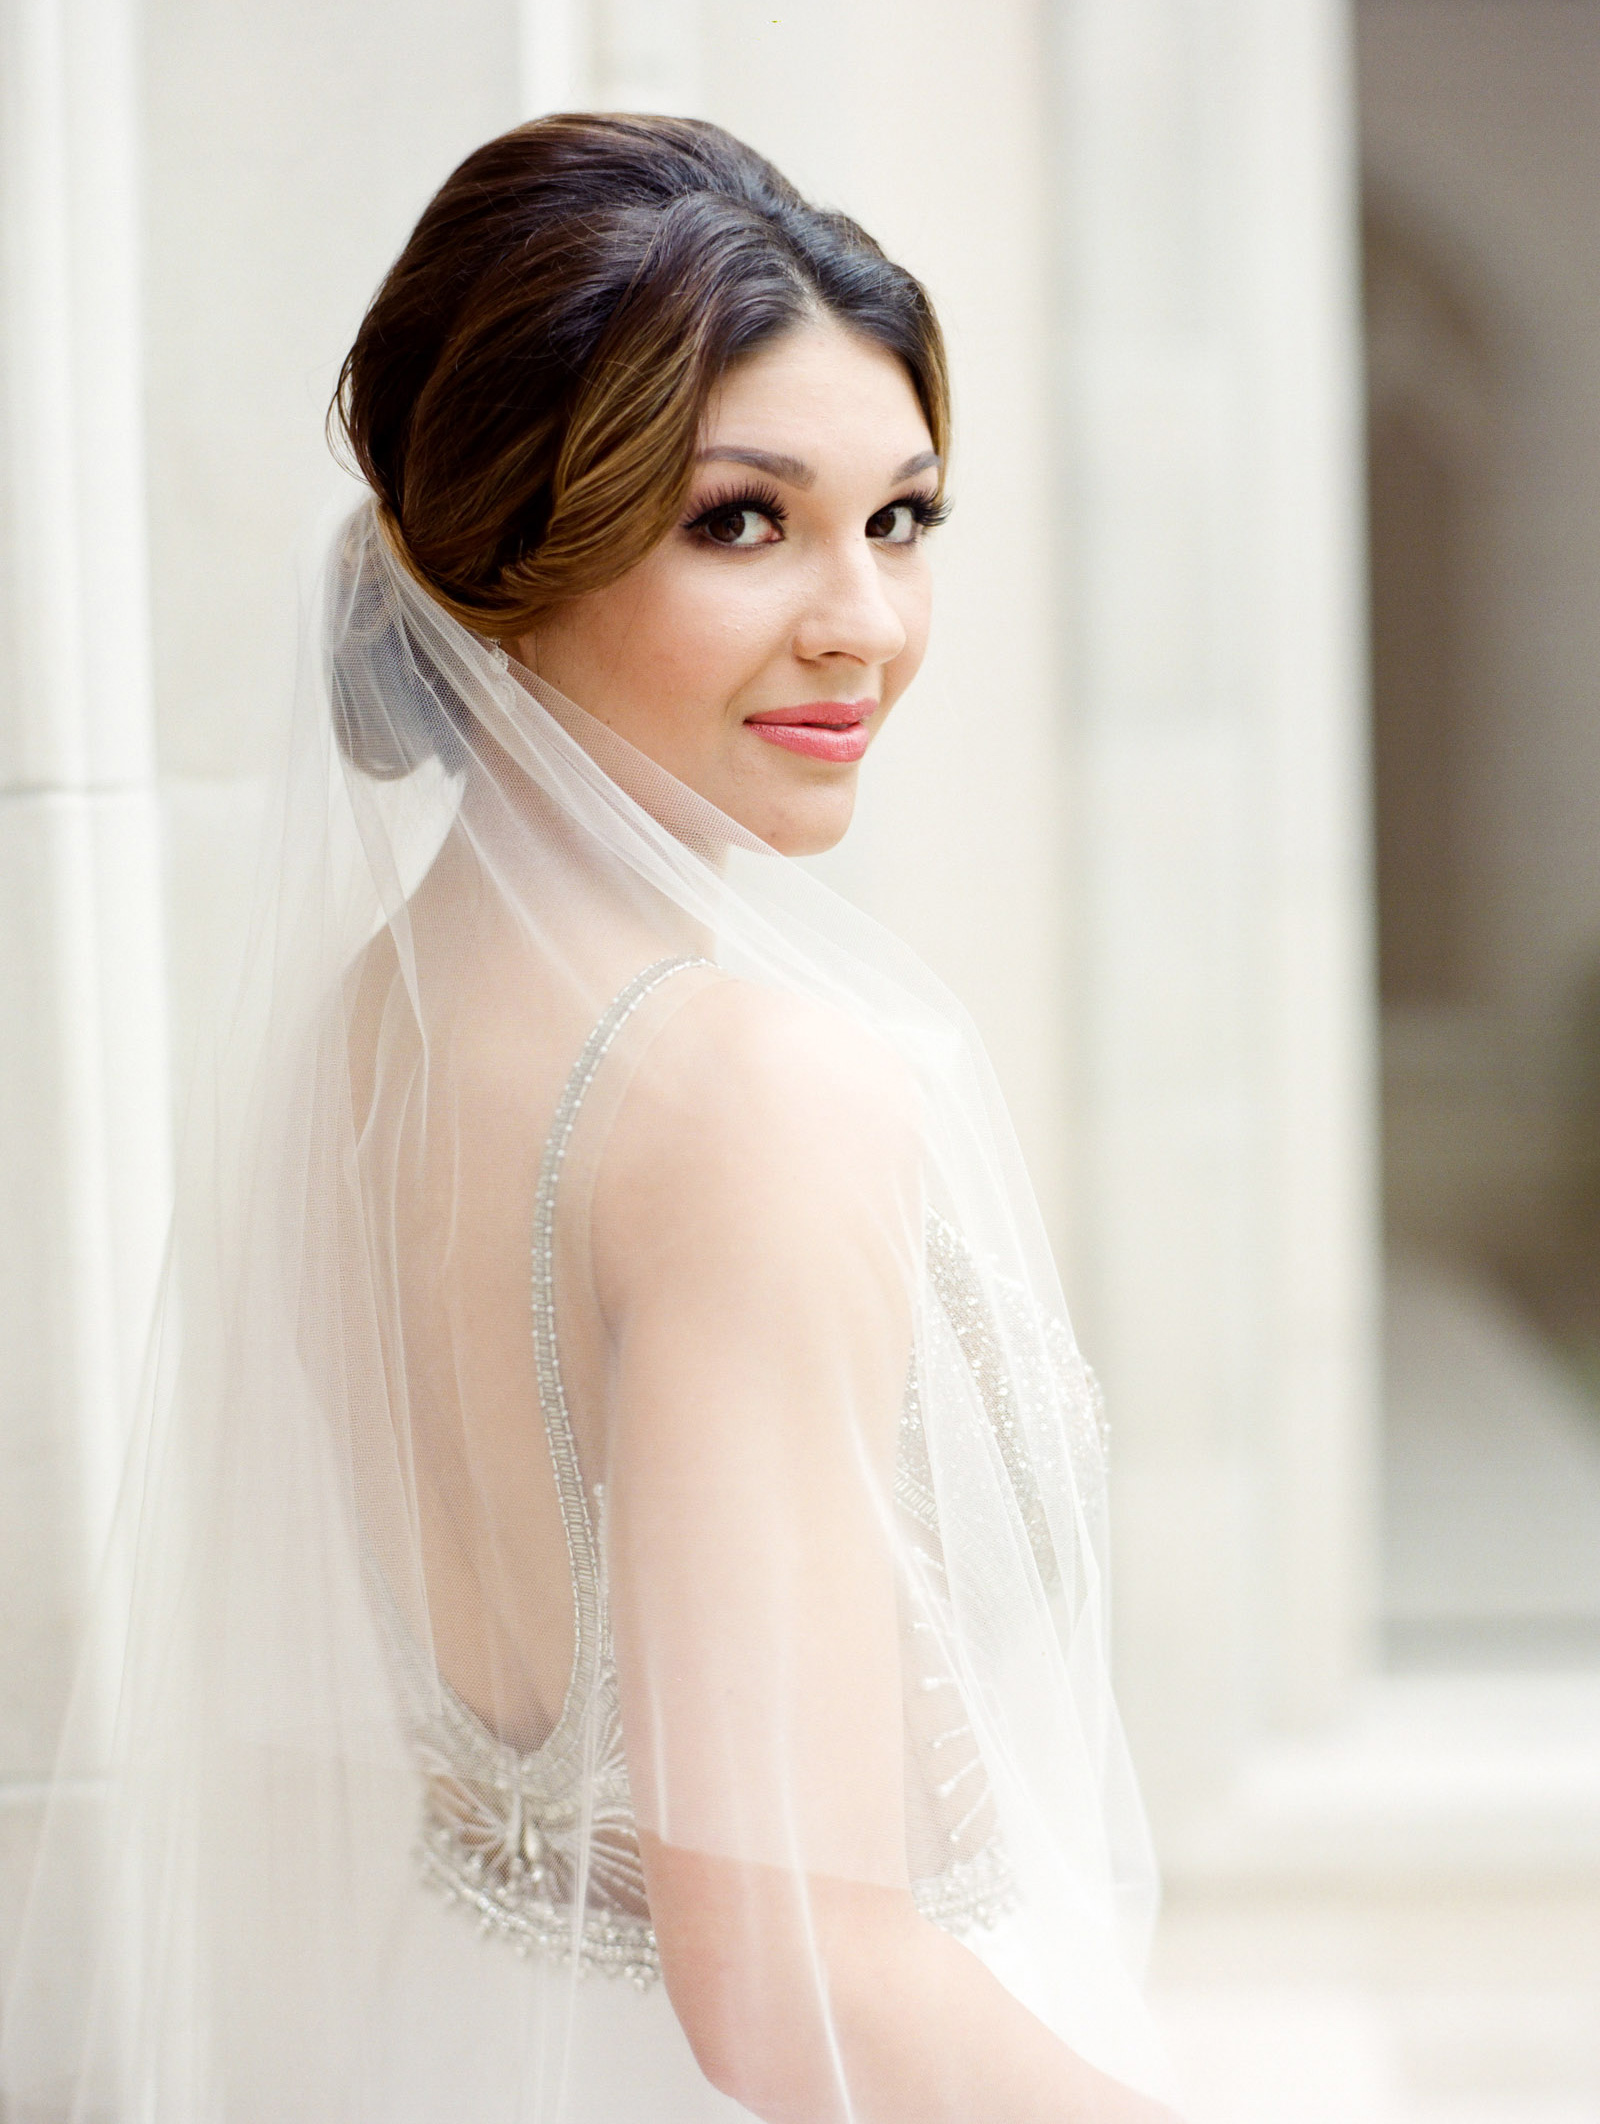 0026_0021_Houston-Chateau-Cocomar-Bridal-Portrait.jpg